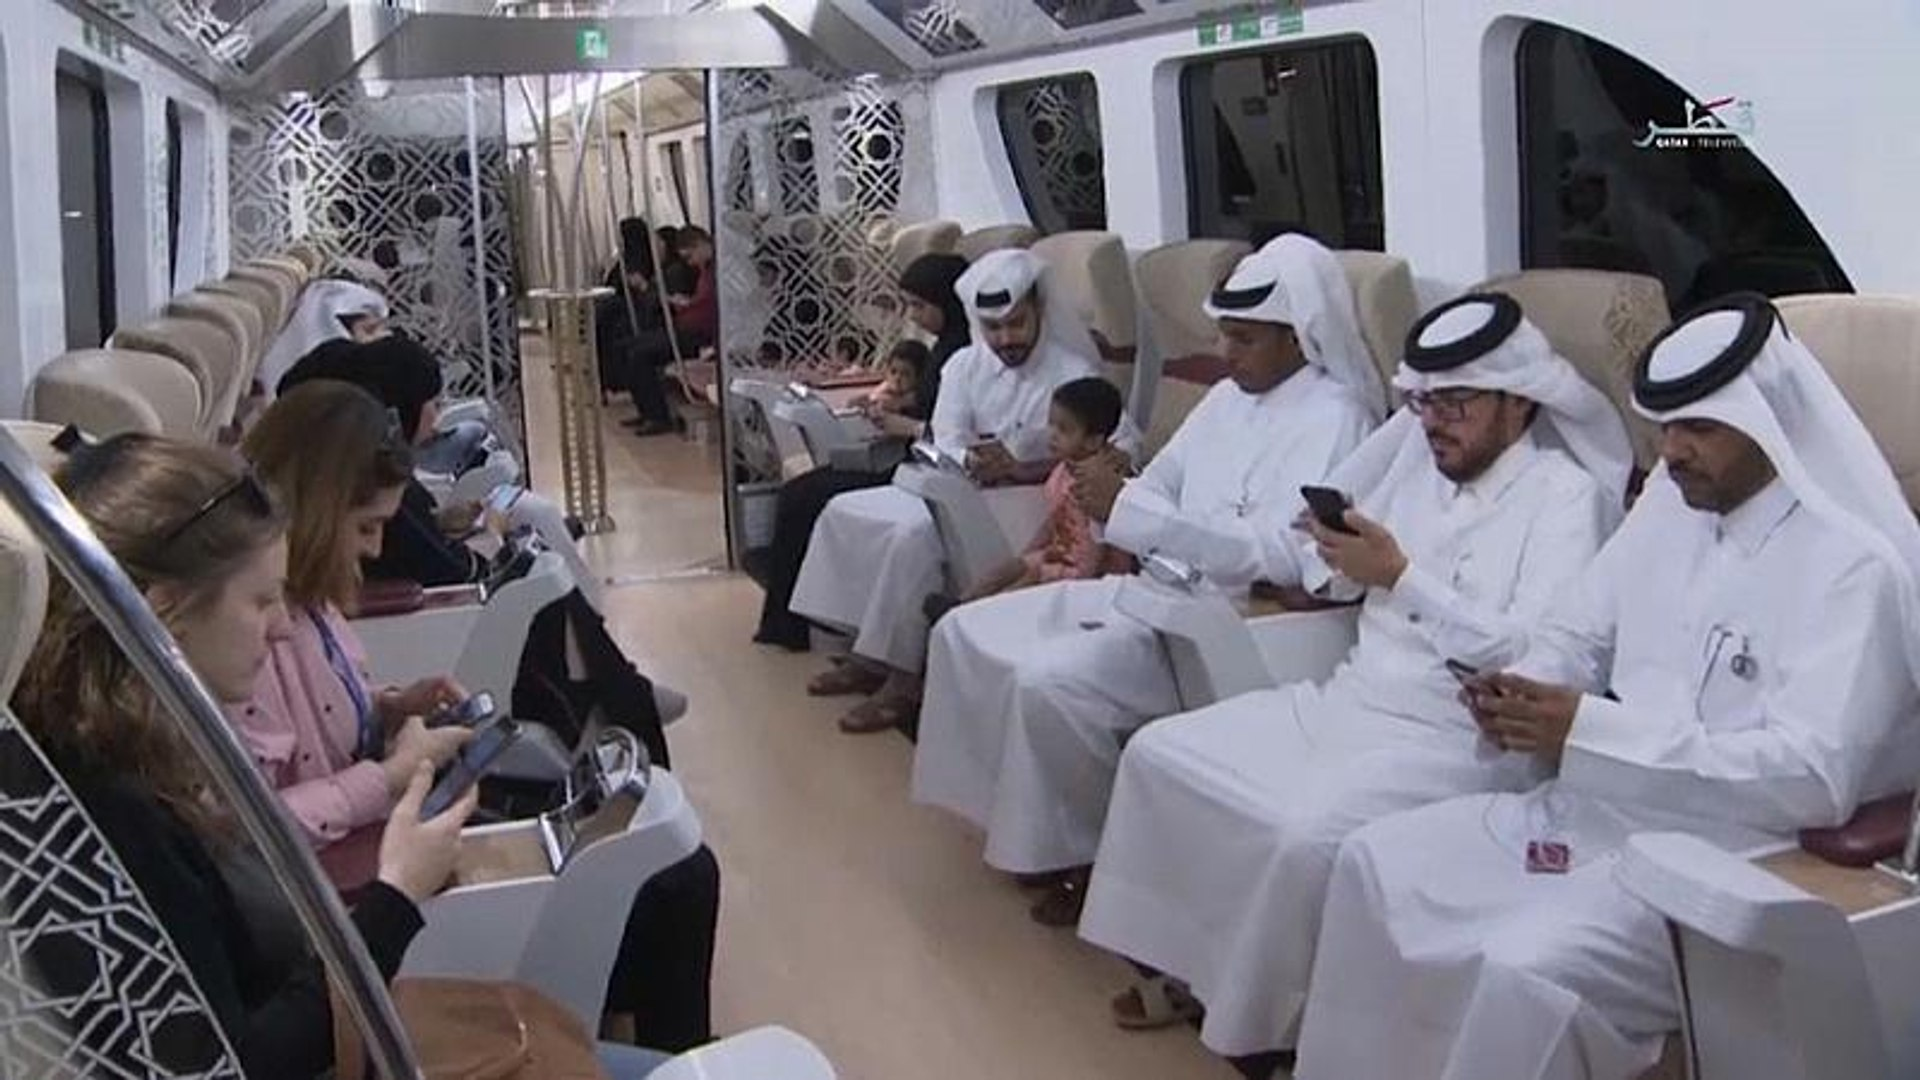 Watch: Qatar unveils metro ahead of 2022 FIFA World Cup